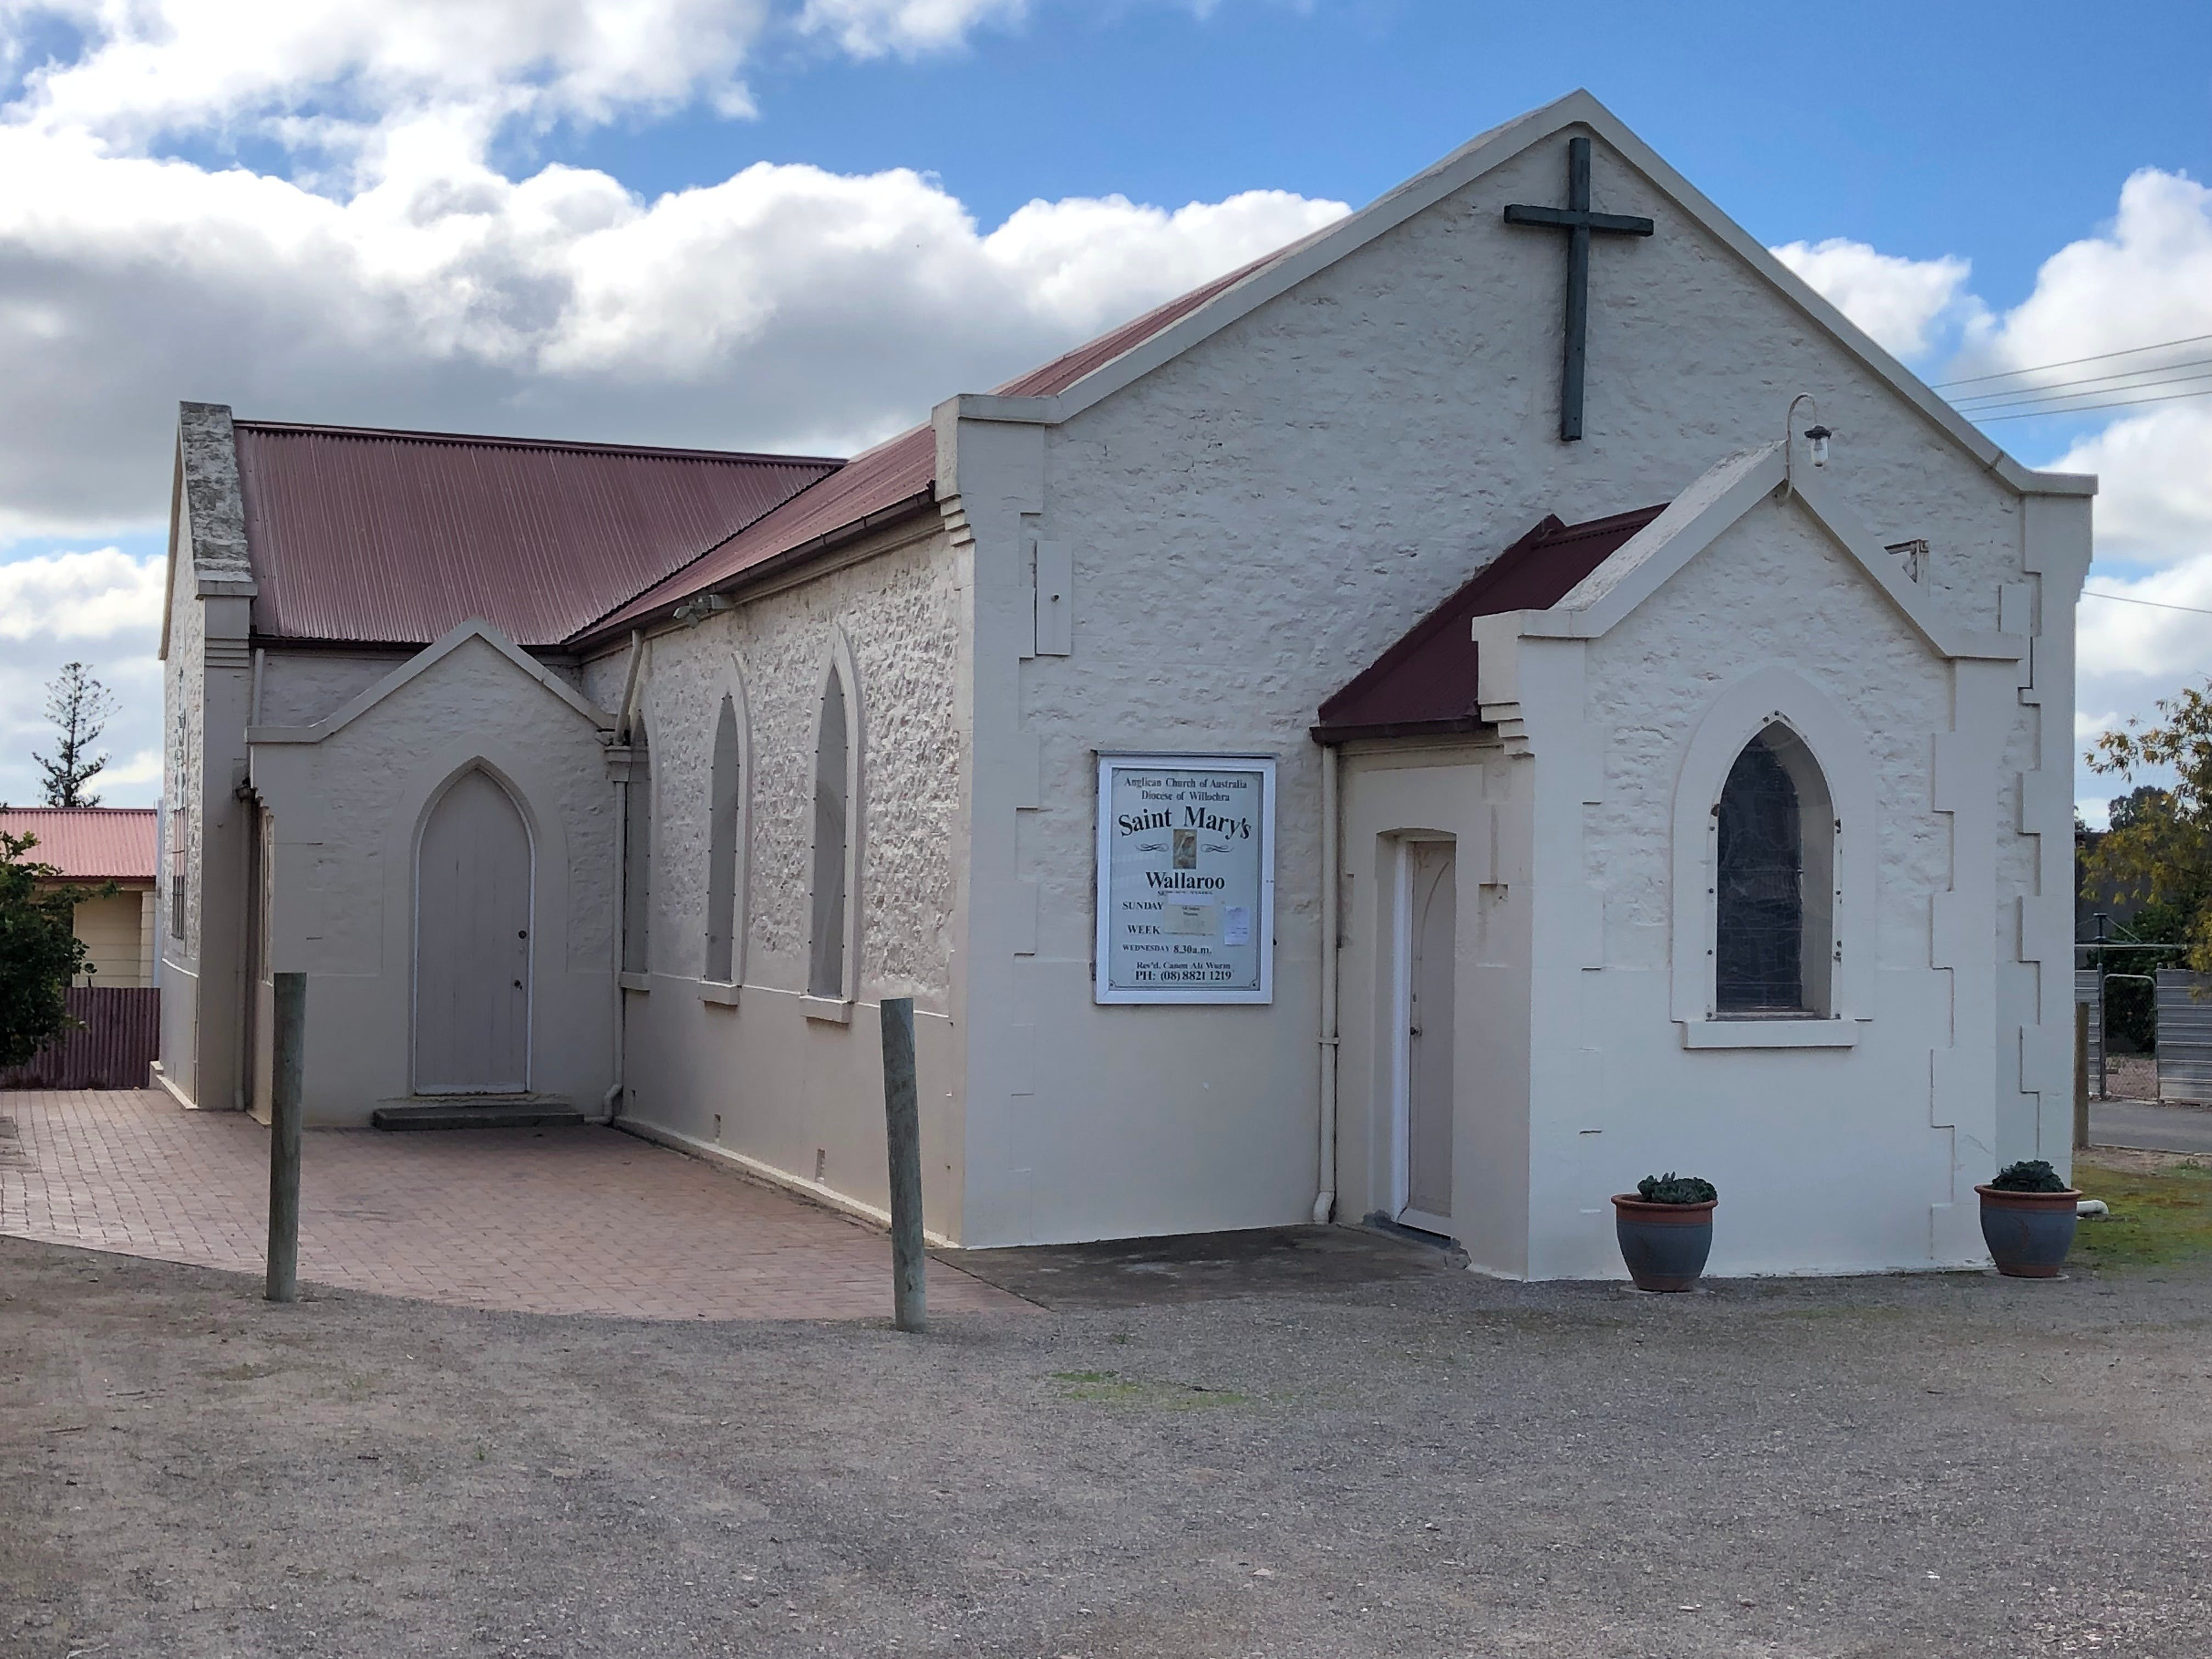 St Mary's Anglican Church Wallaroo - Find Attractions